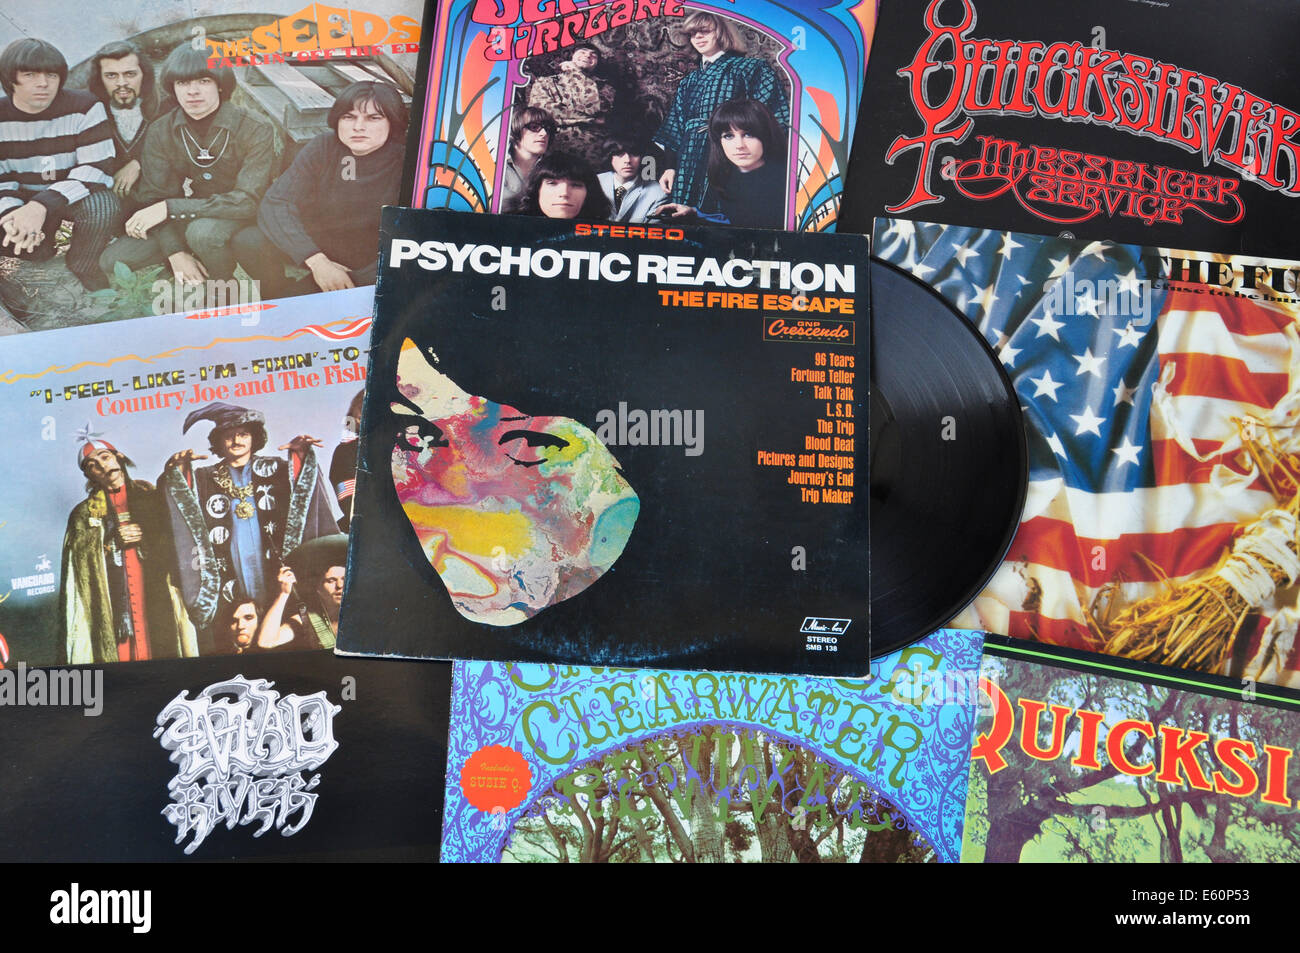 Psychedelic Rock And Garage Punk Music From The 1960s Vintage Vinyl Records Cover Art